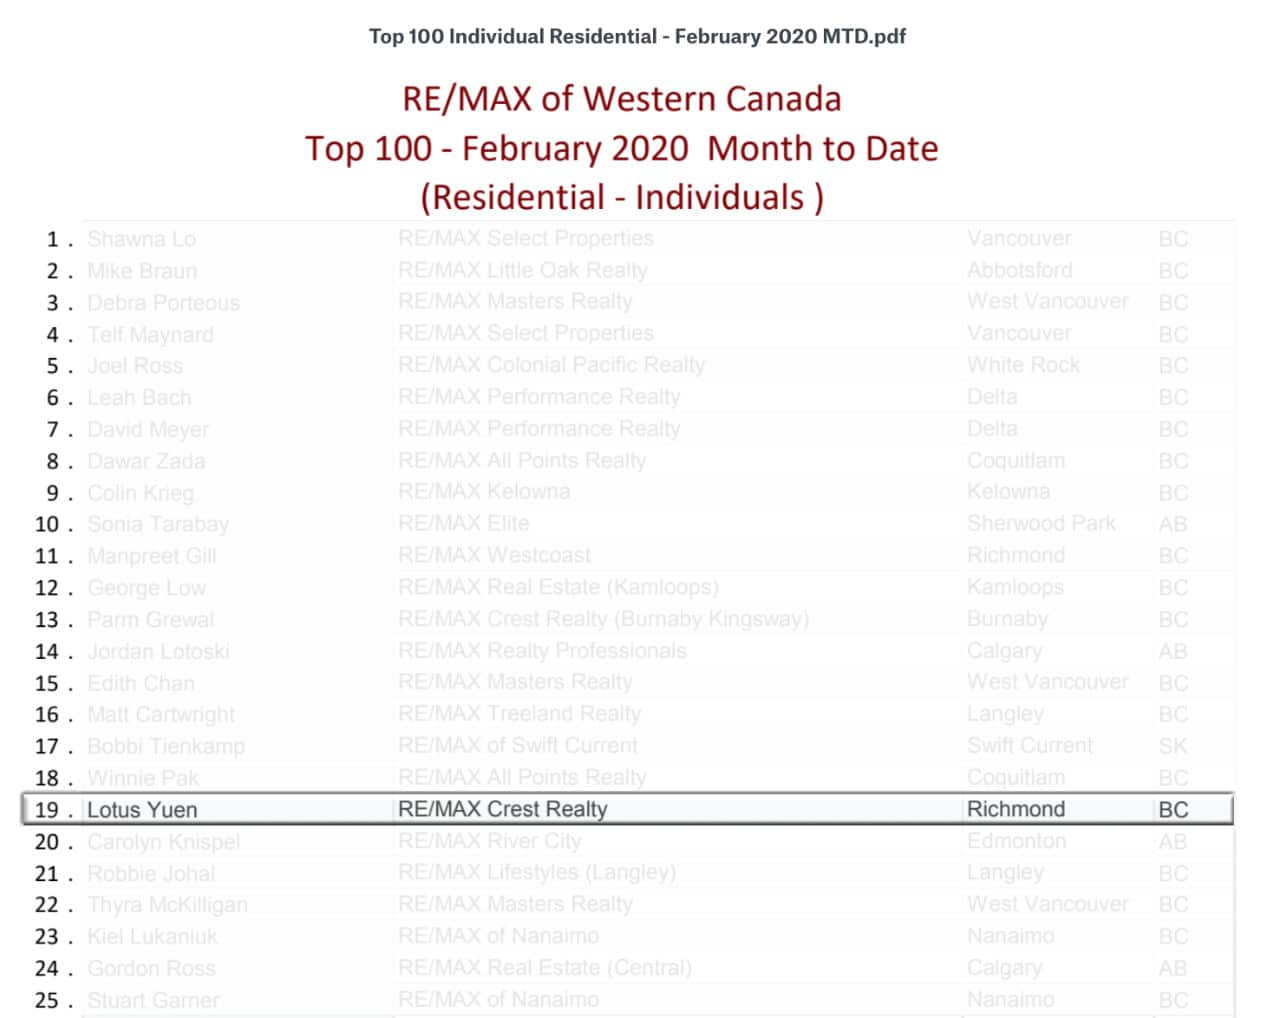 Top 100 Realtors of RE/MAX Western Canada in Feb 2020